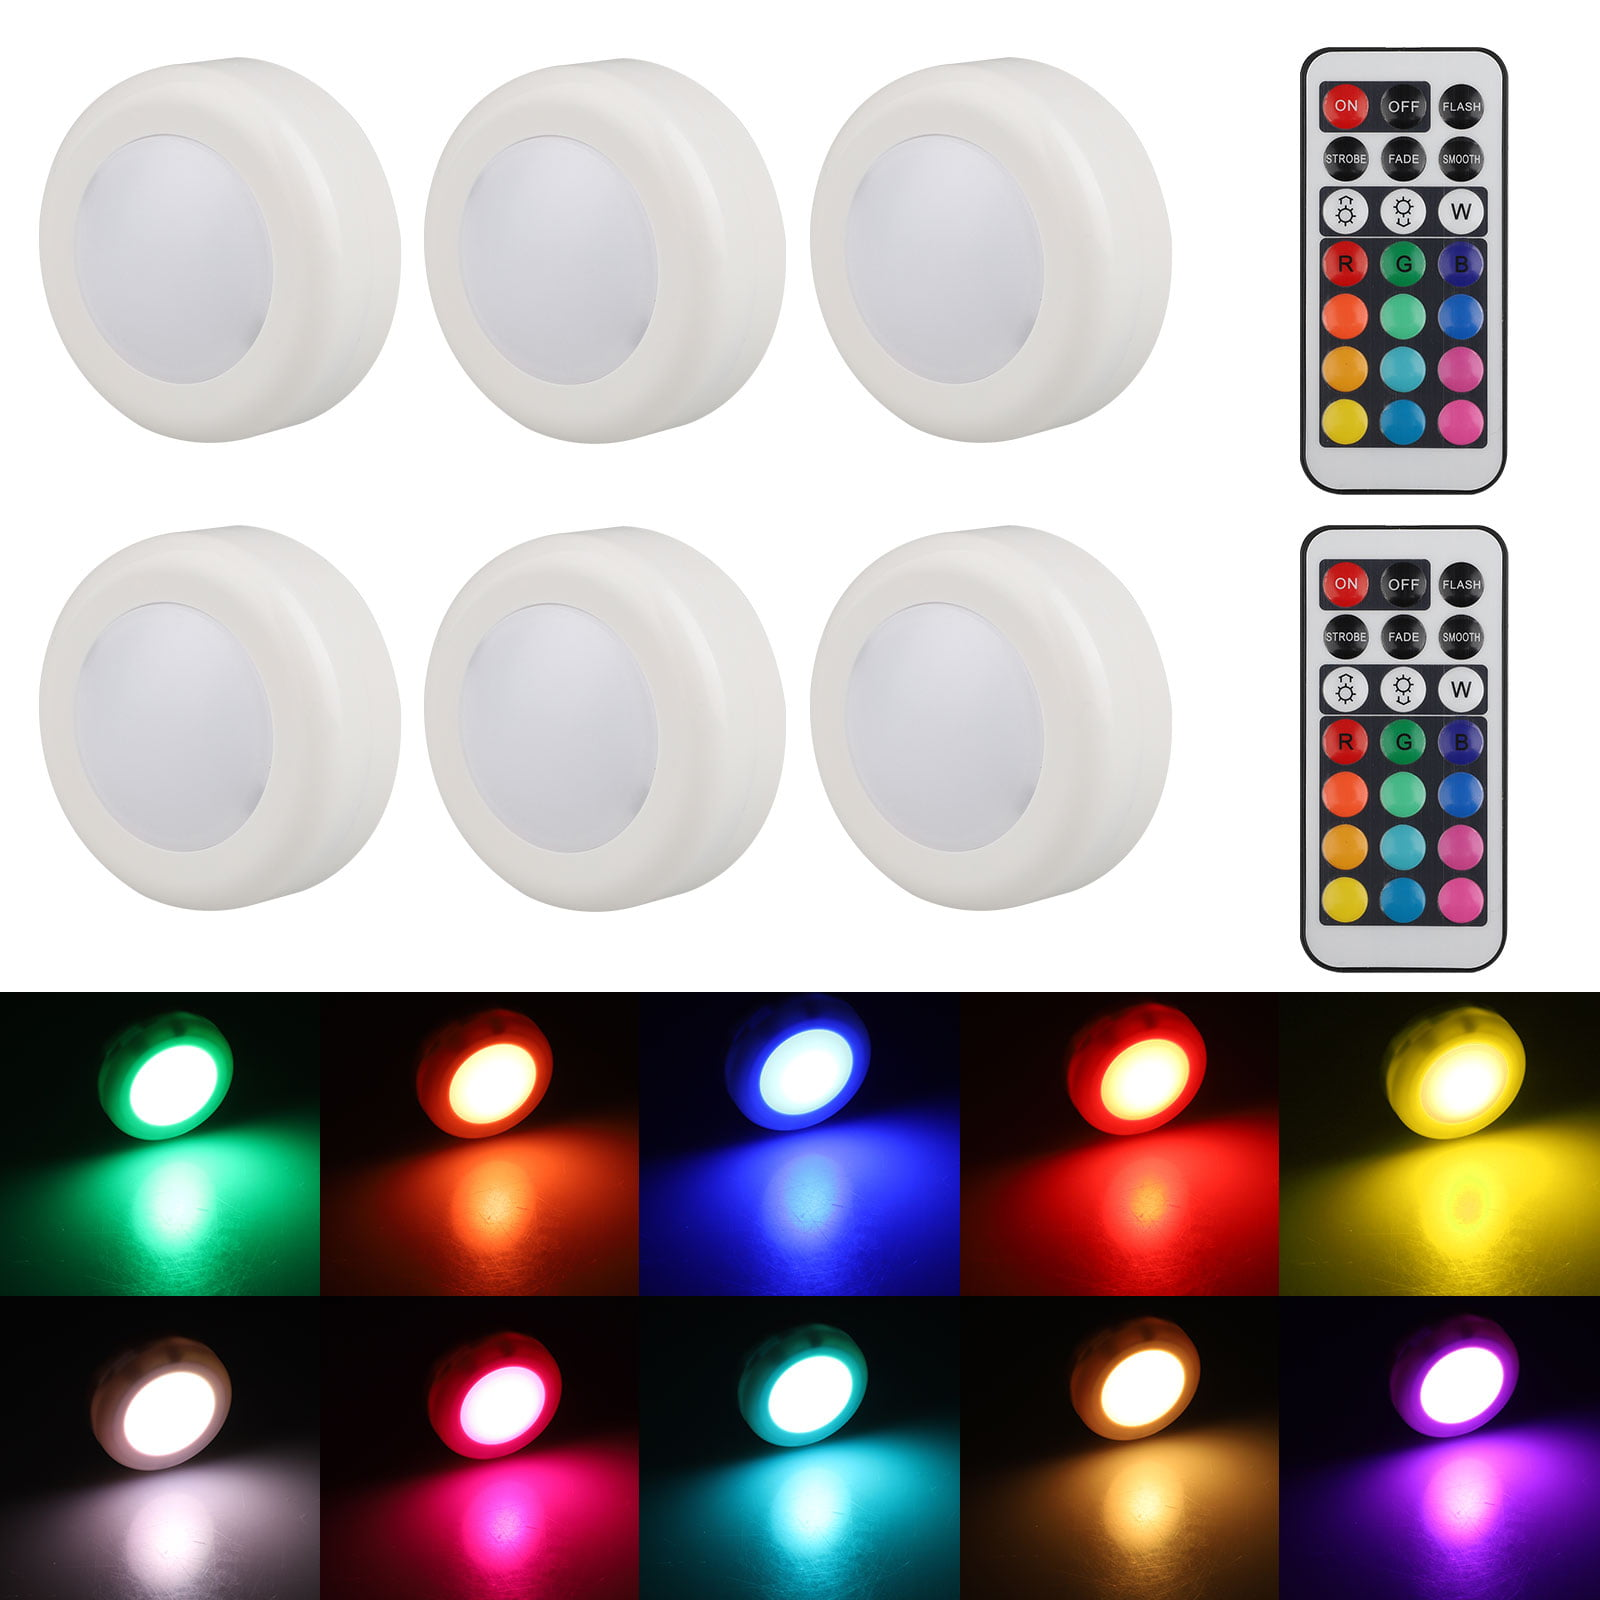 Yundap 6 Pack Wireless Led Puck Lights Color Changing Led Under Cabinet Lighting With Remote Control Battery Powered Dimmable Closet Kitchen Lights Under Counter Lighting Stick On Lights Walmart Canada